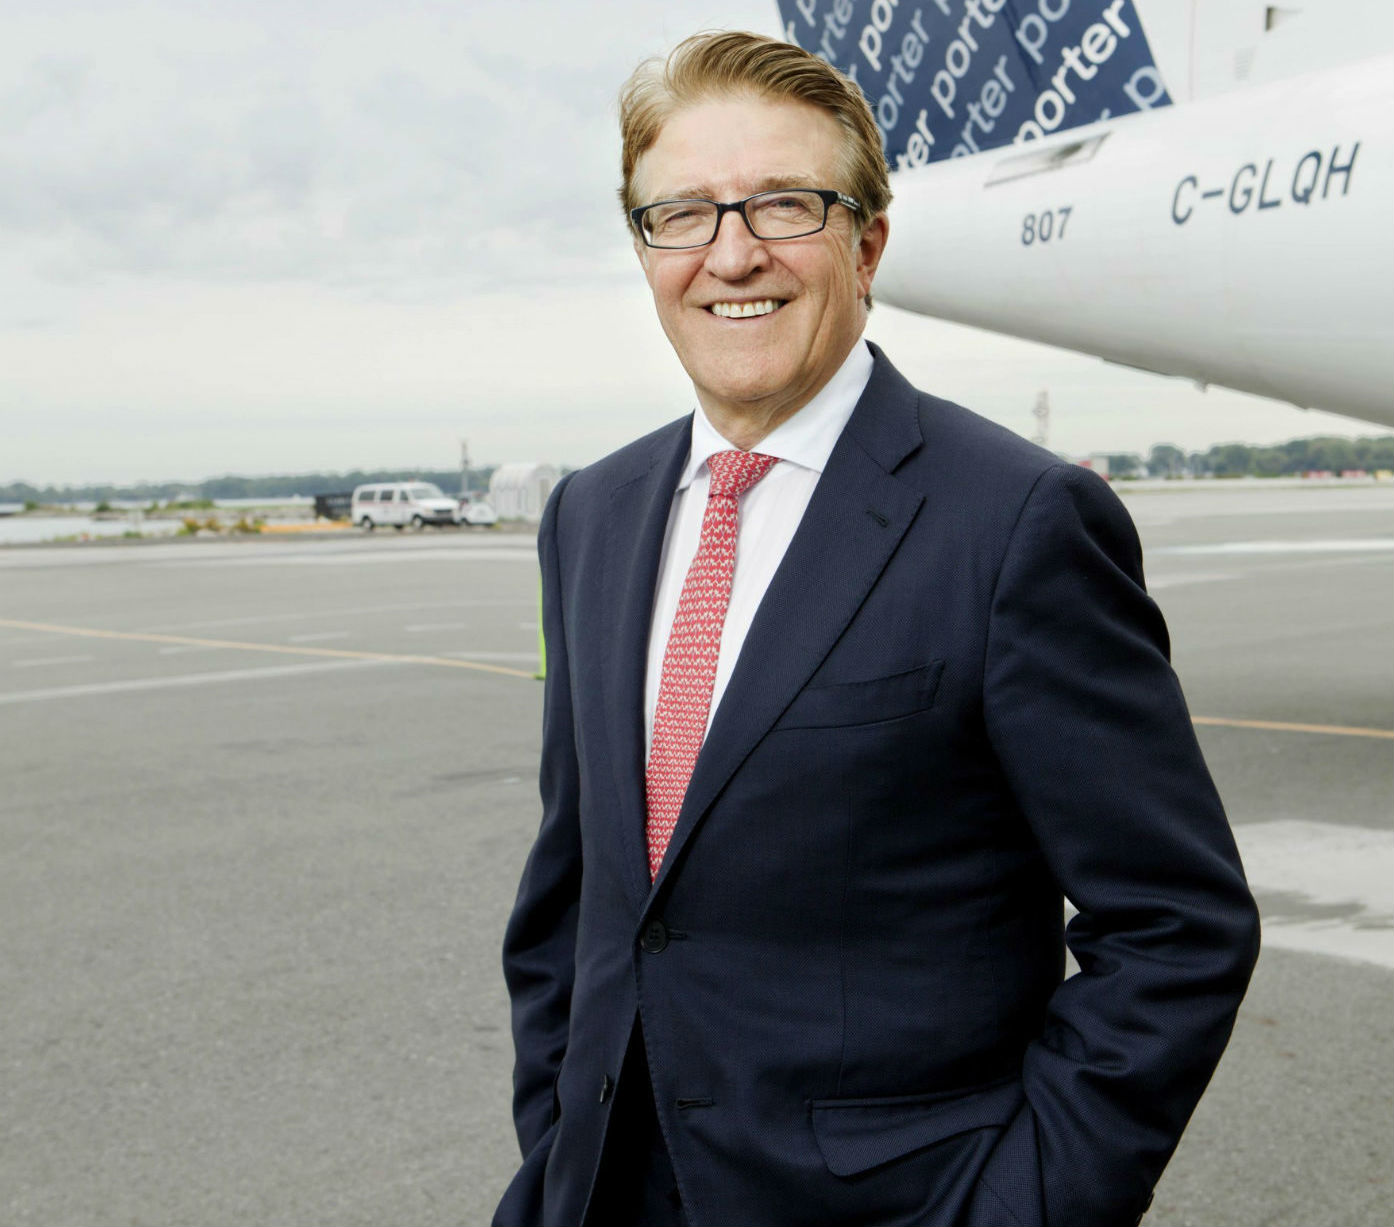 Porter Airlines president and CEO Robert Deluce stands with a Porter aircraft.